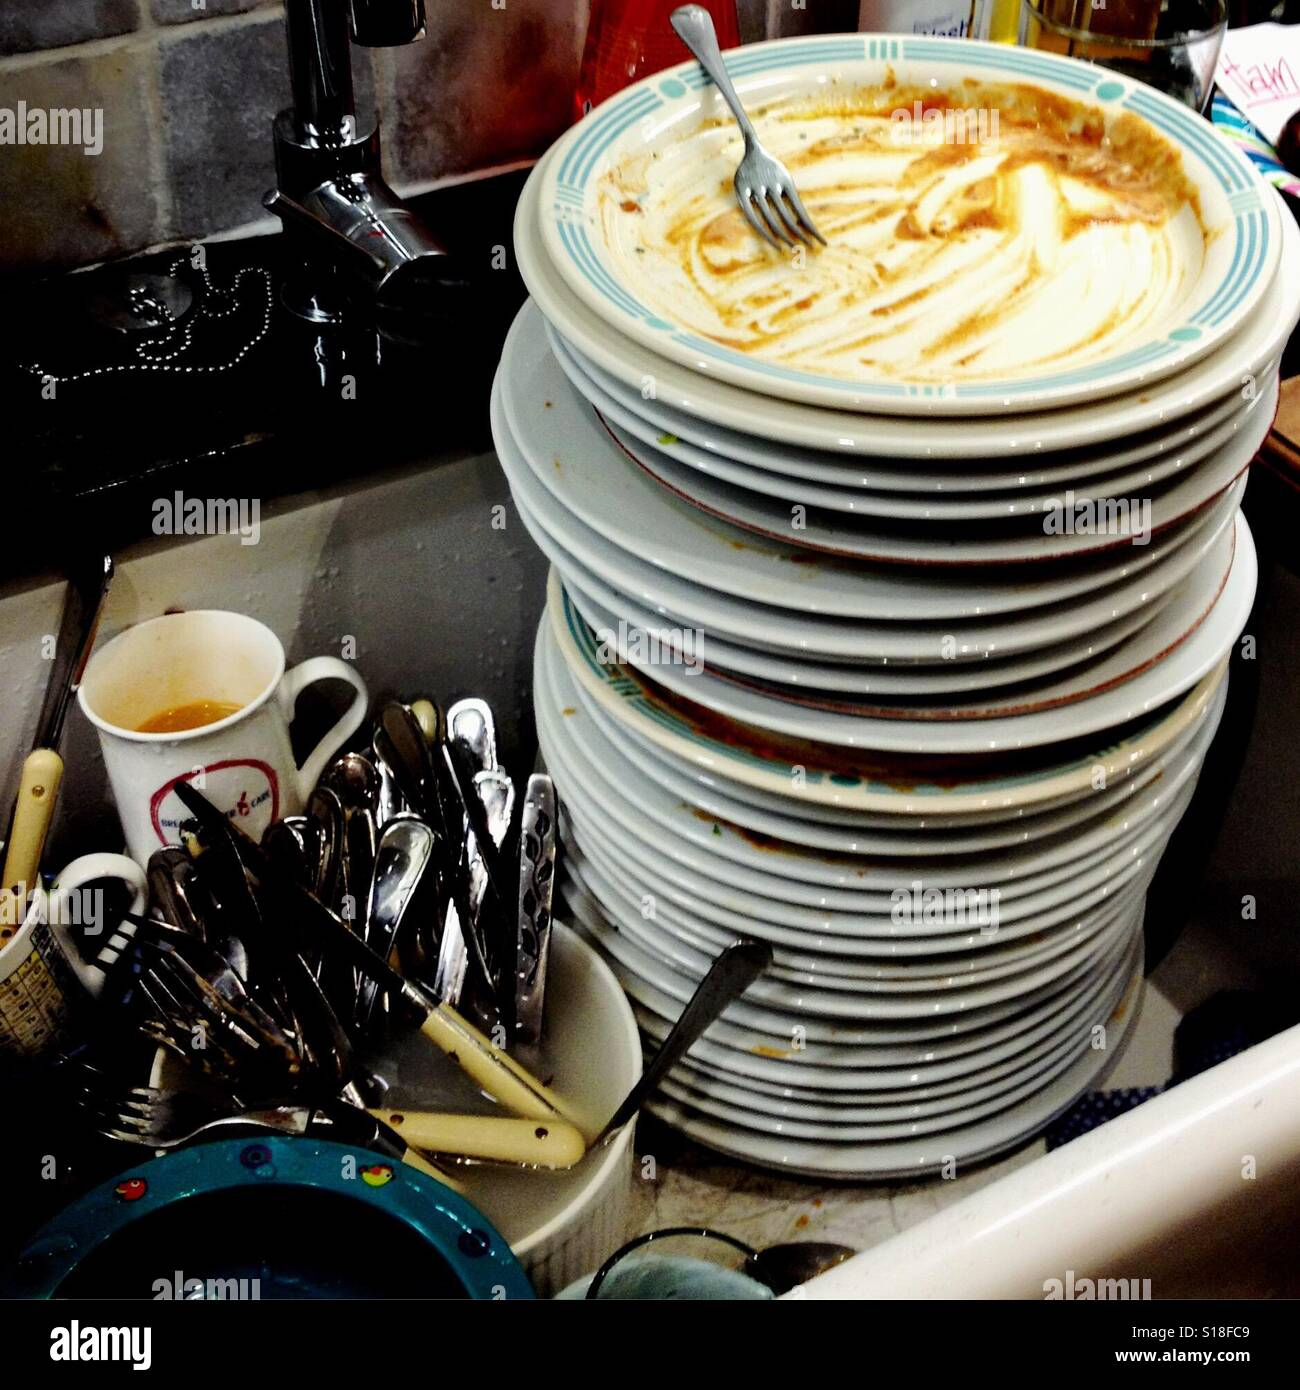 Messy Kitchen Sink Stock Photos: Large Pile Of Dirty Washing Up In The Kitchen Sink Stock